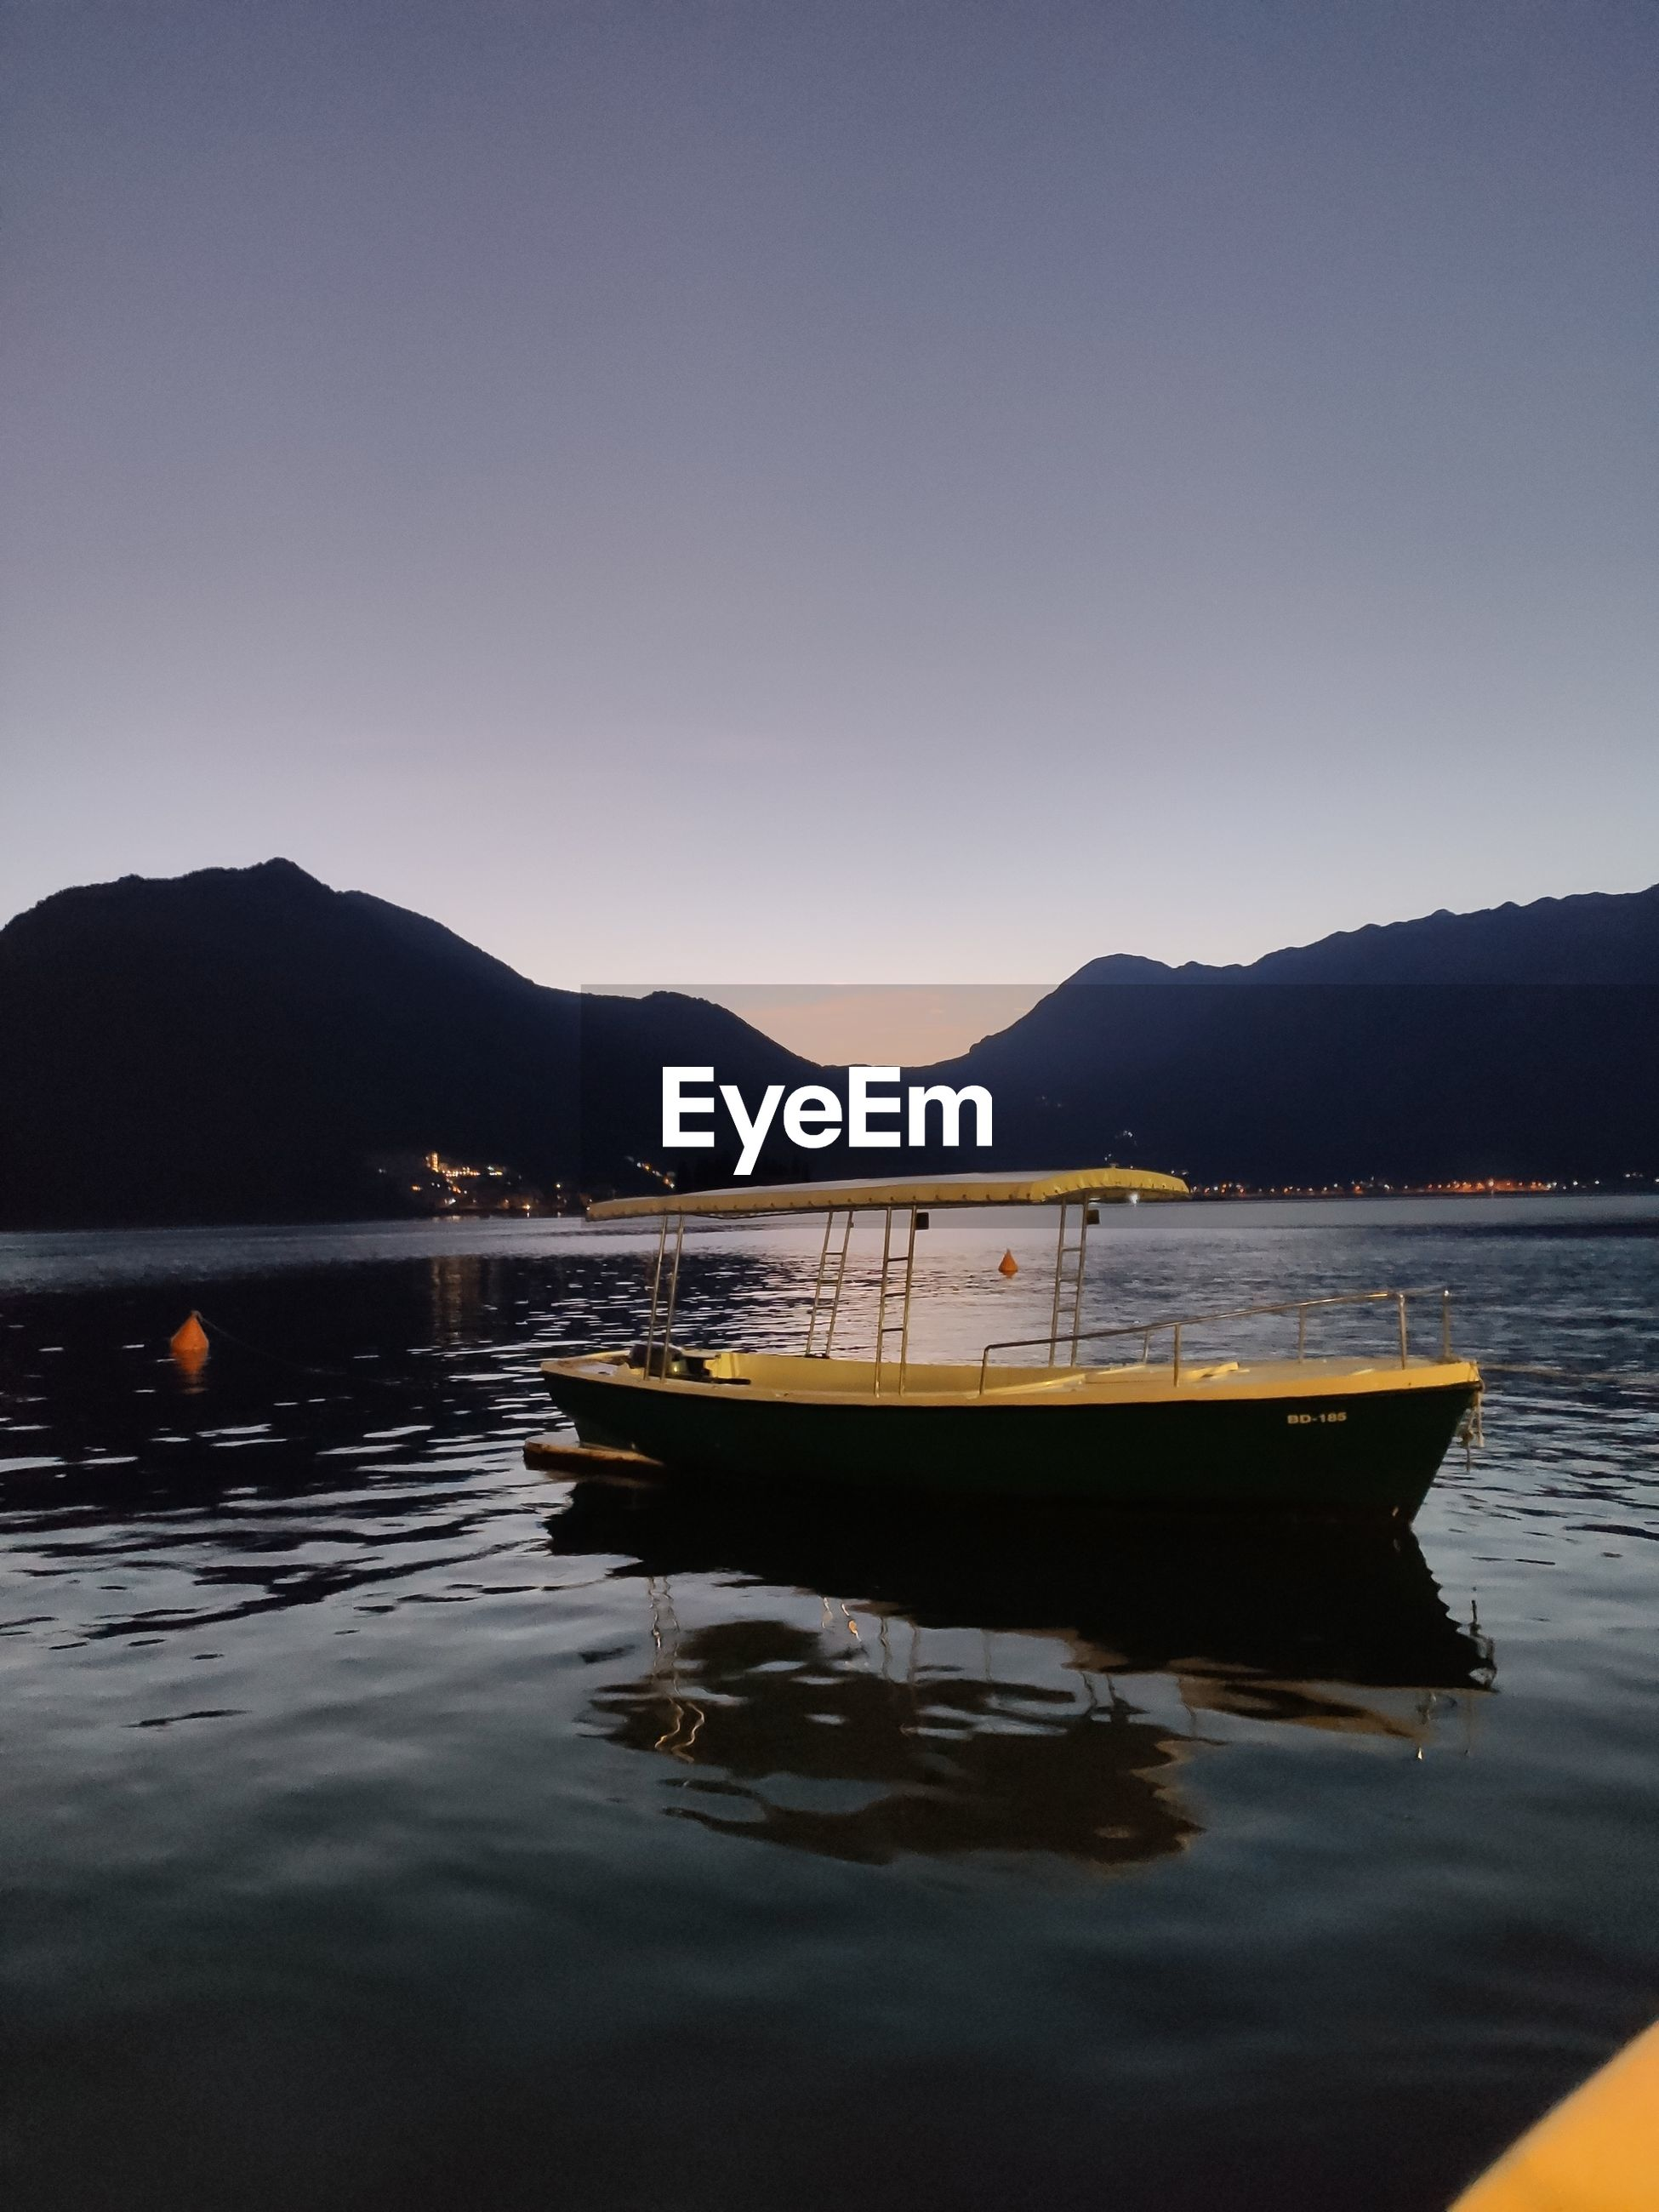 Boat in lake against clear sky during sunset